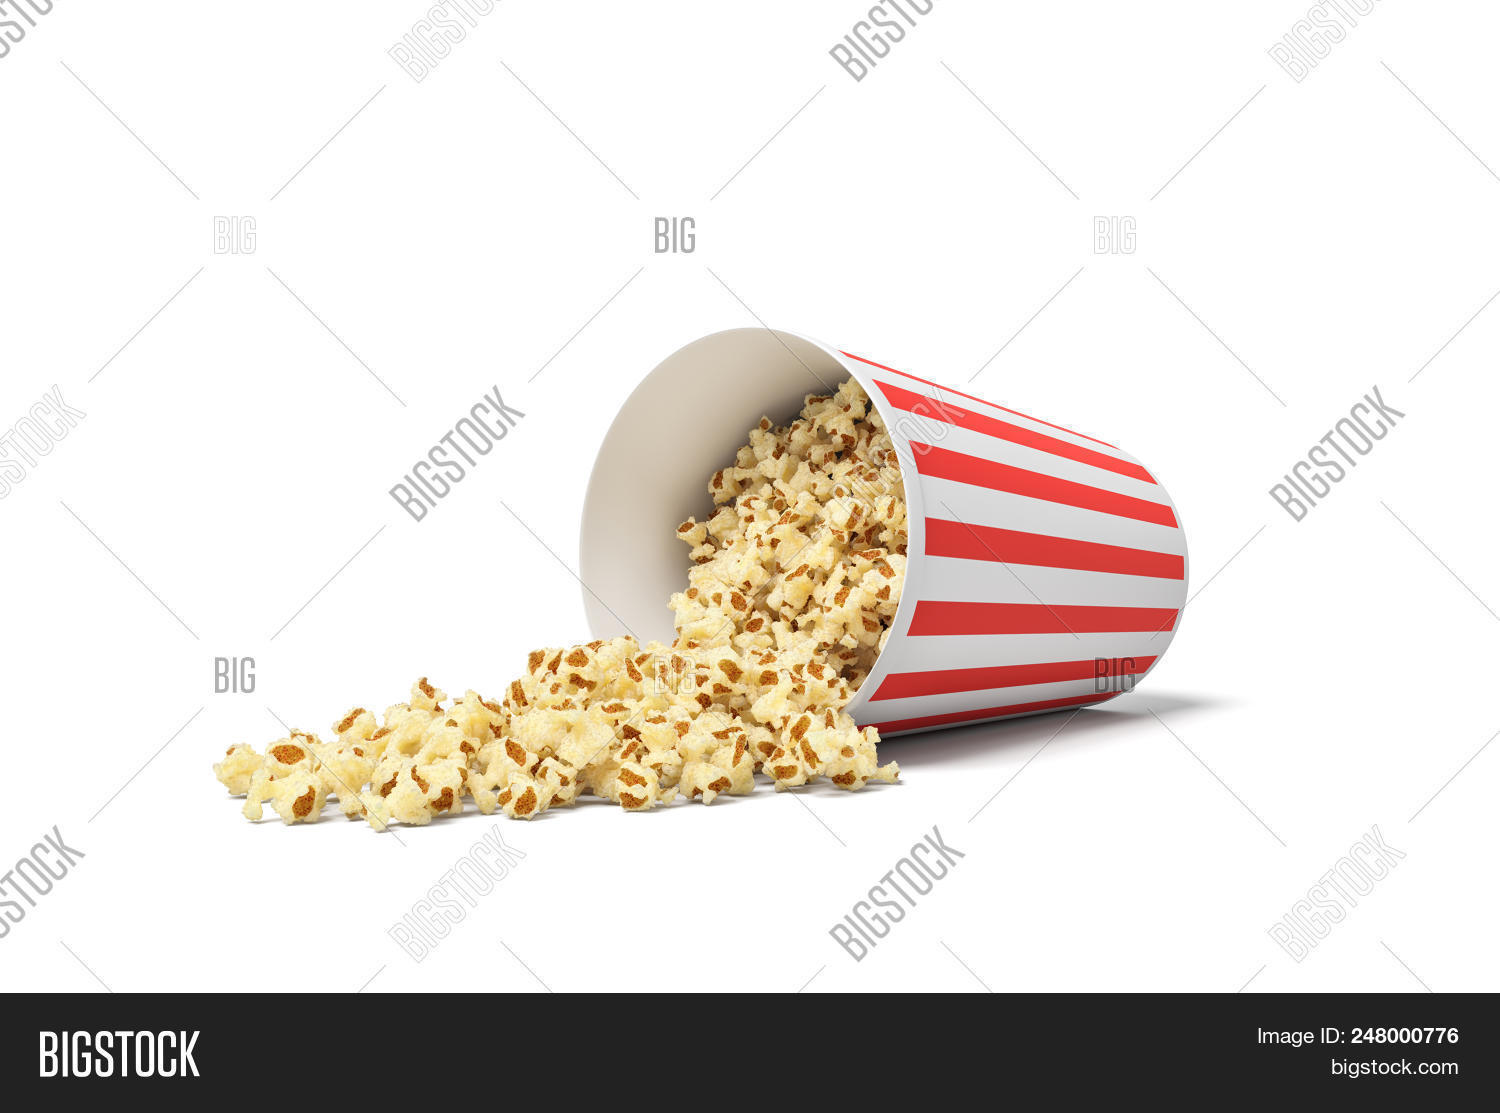 3d,bag,big,bucket,cardboard,carton,cg,cinema,closeup,container,corn,cup,delicious,drop,eat,entertainment,fall,fast,fastfood,fat,filled,food,fresh,full,heap,image,isolated,kernel,lie,movie,nobody,out,pack,paper,pile,pop,popcorn,red,render,rendering,salted,salty,snack,spill,striped,stripes,takeout,tasty,unhealthy,white